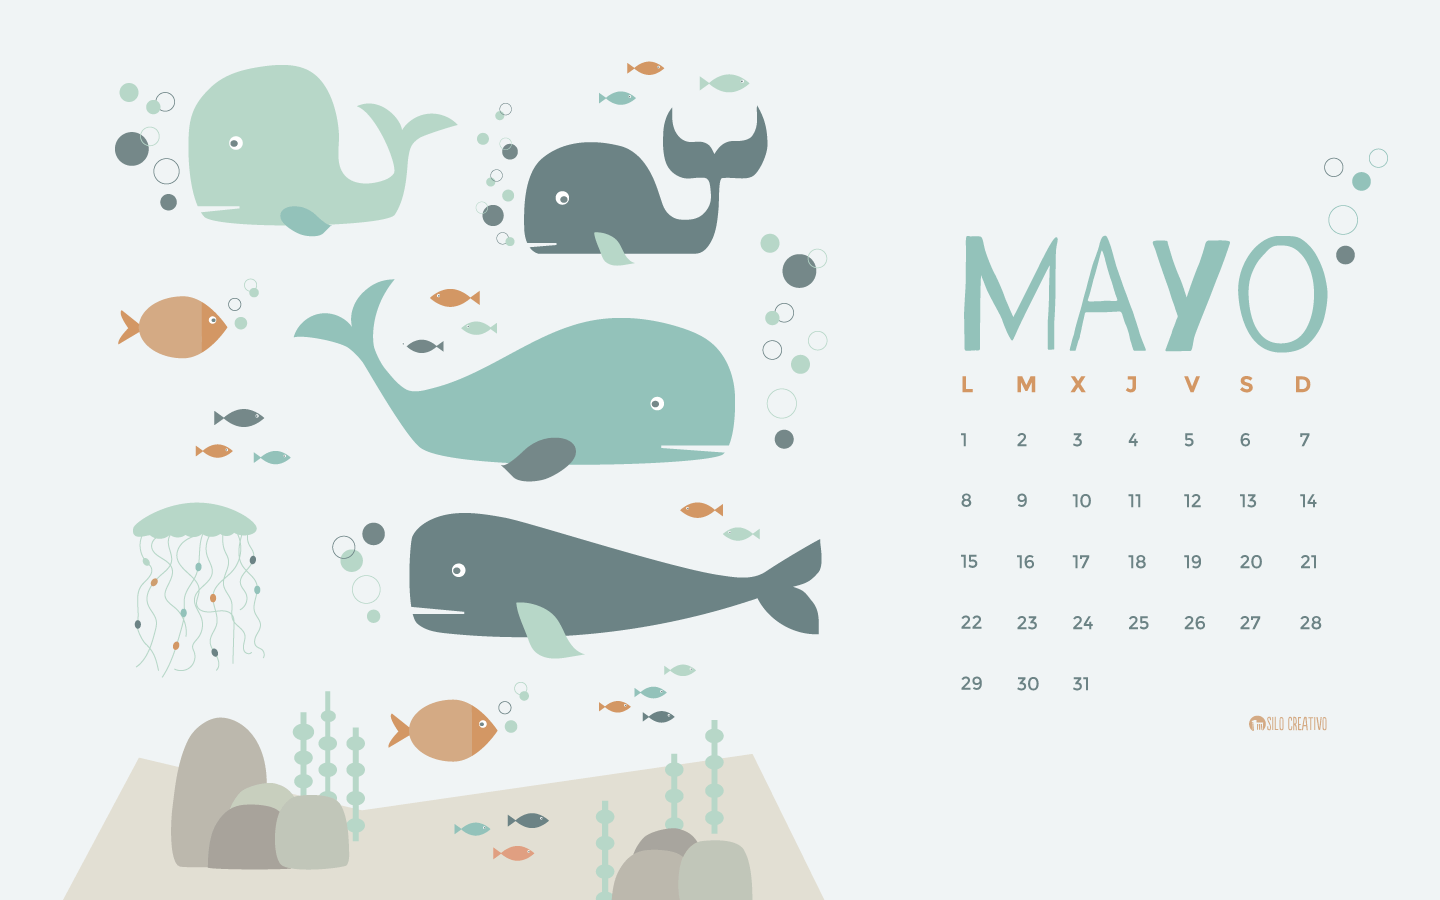 Calendario Mes Mayo 2017 Calendario Descargable Mayo 2017 Silo Creativo